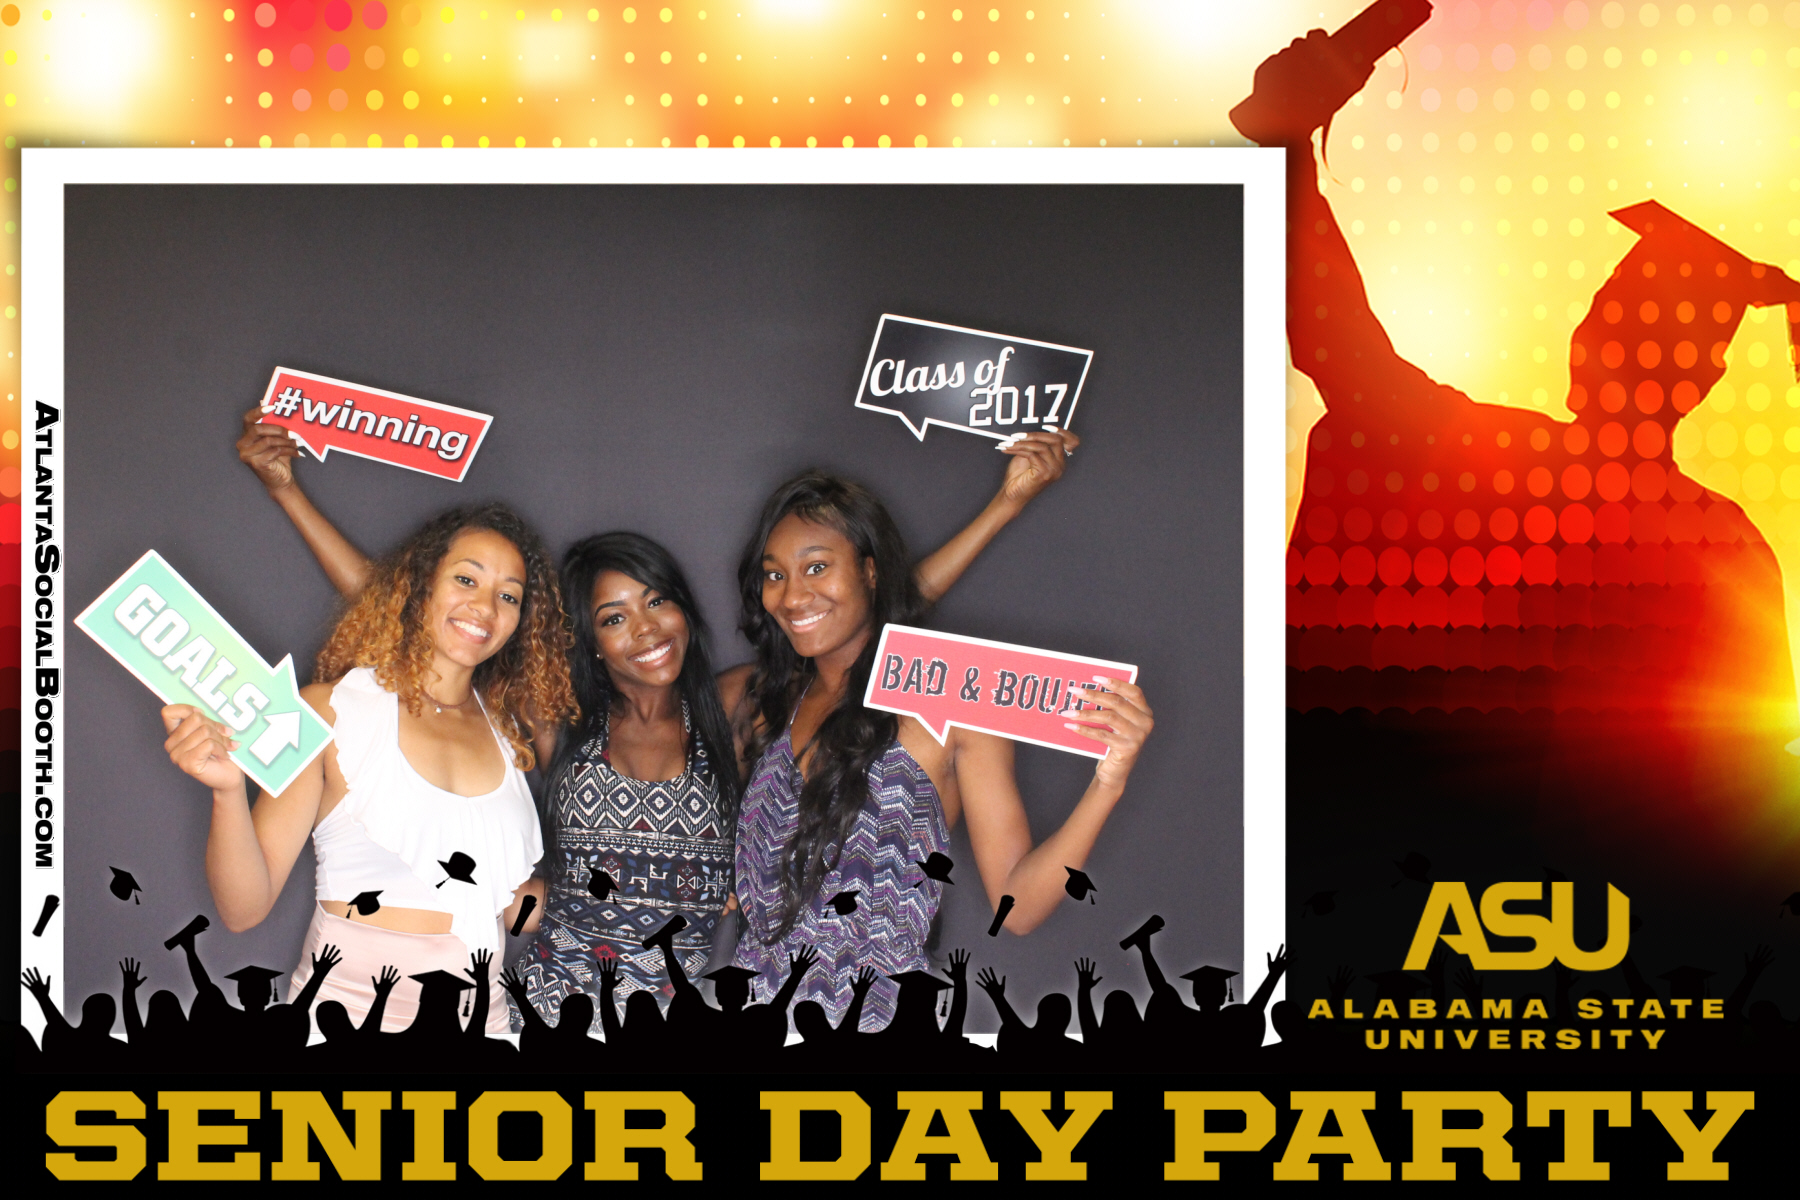 ASU Sr. Day Party